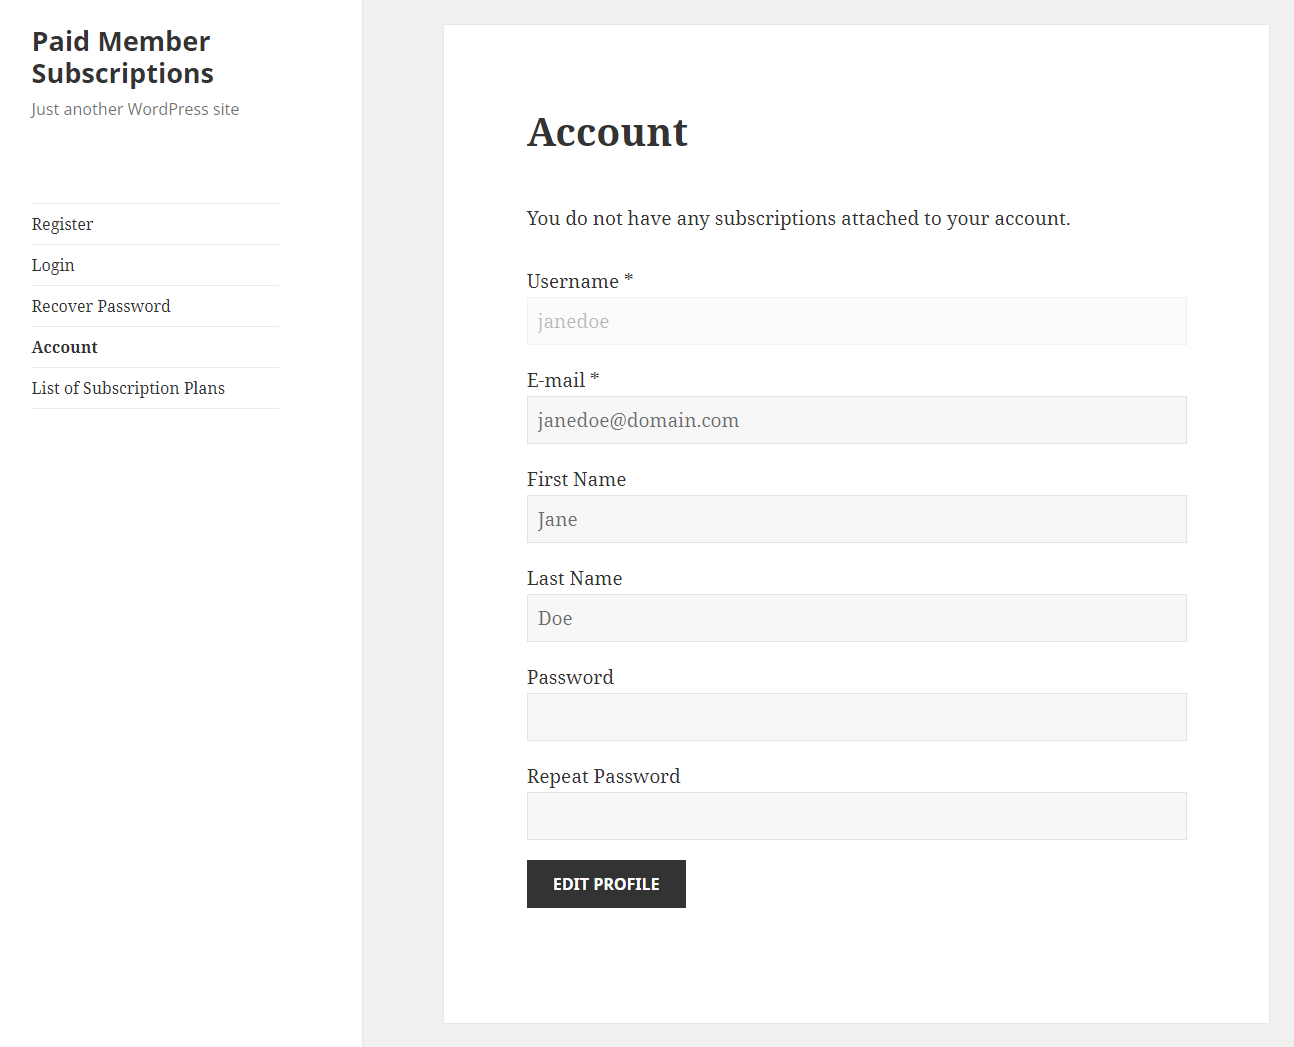 Paid Member Subscriptions Pro - Navigation Menu Filtering - Logged In Non Member